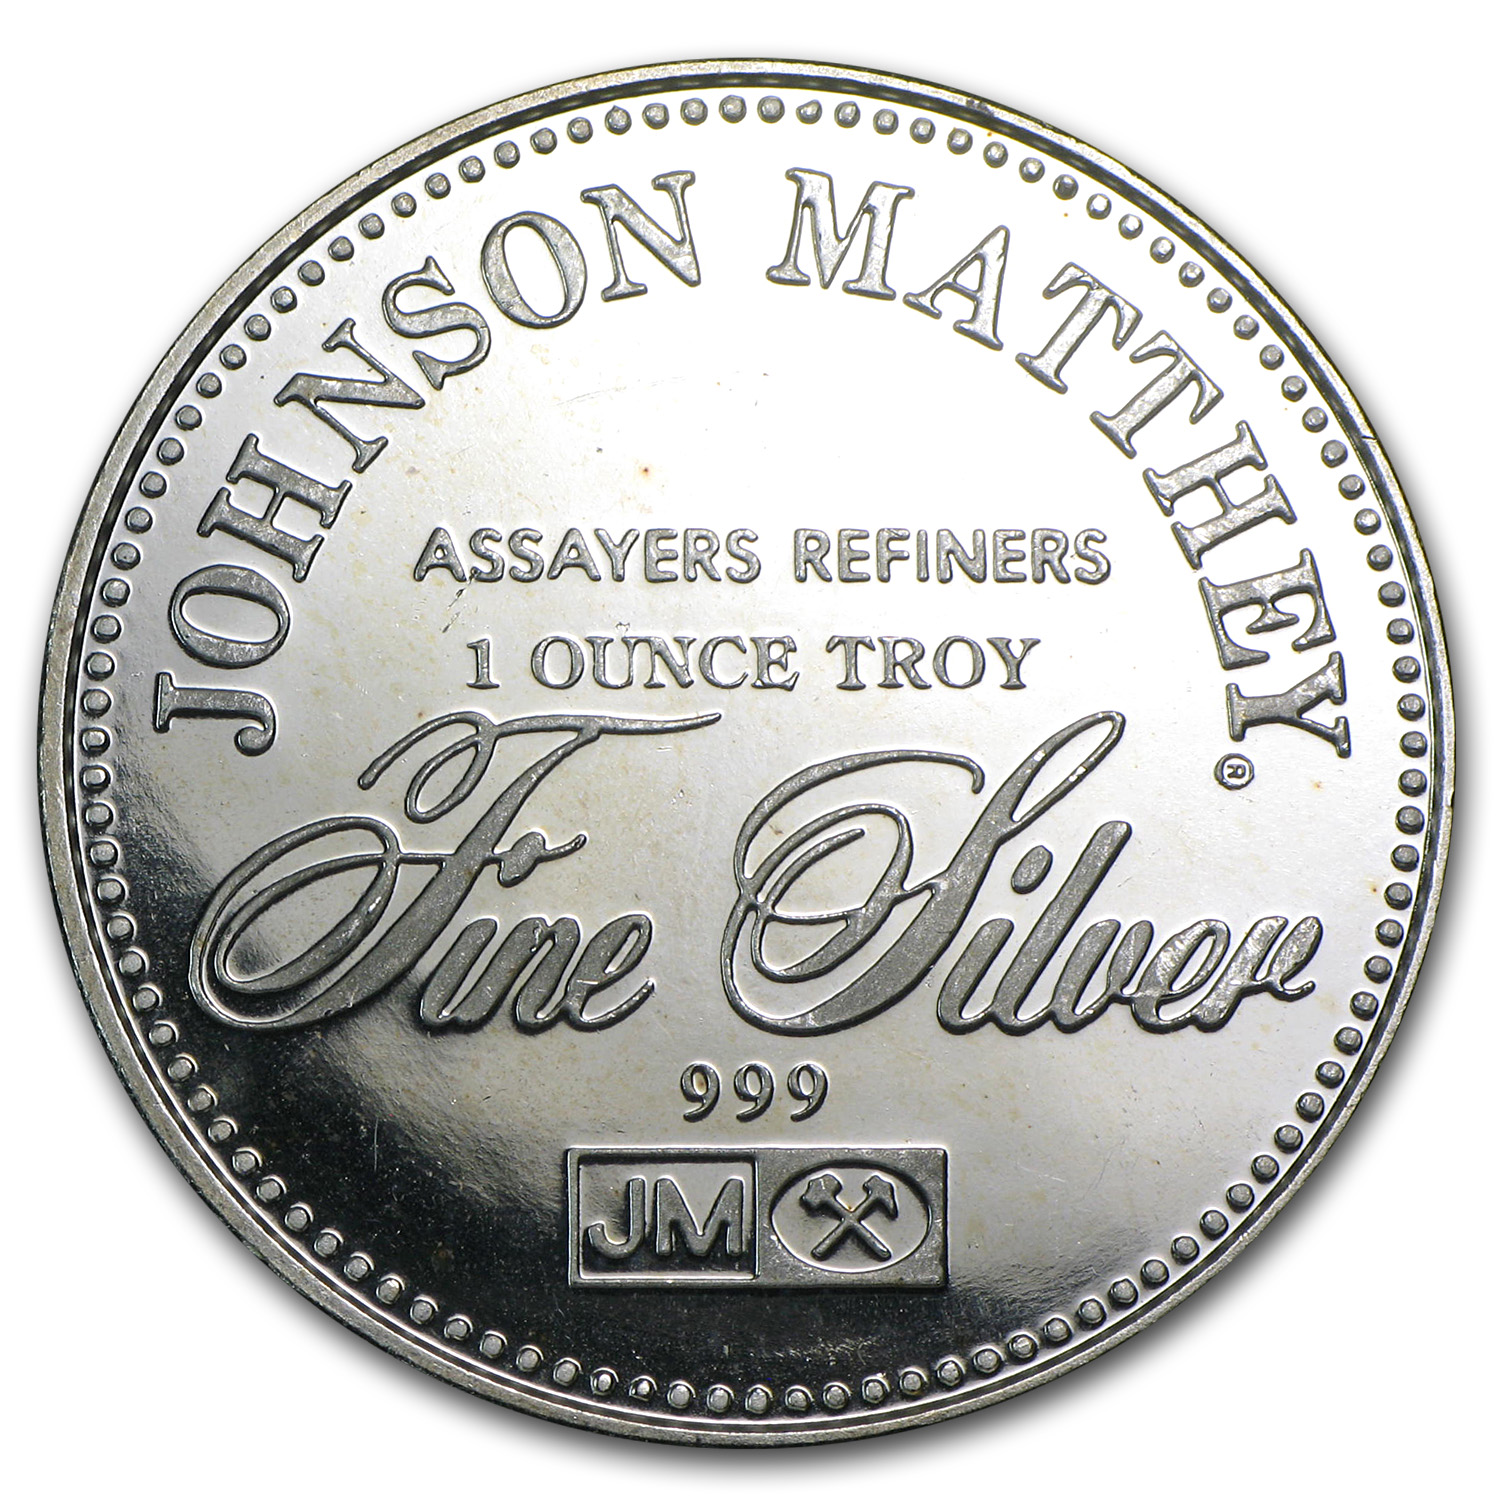 1 oz Silver Round - Johnson Matthey (Sealed, Right to Counsel)